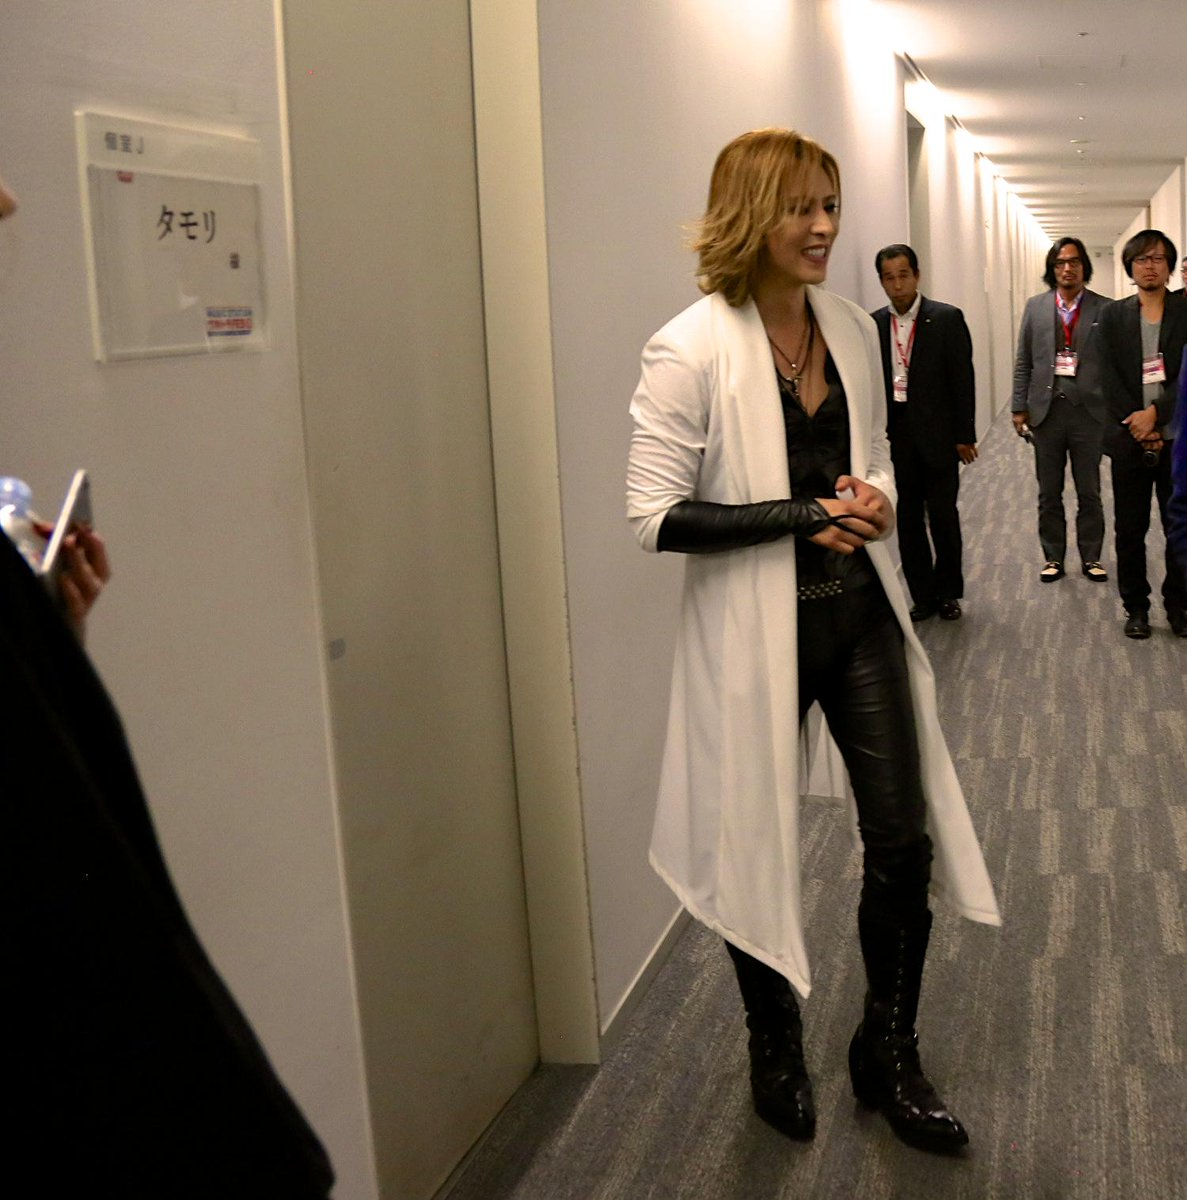 http://twitter.com/YoshikiOfficial/status/646686053315813376/photo/1